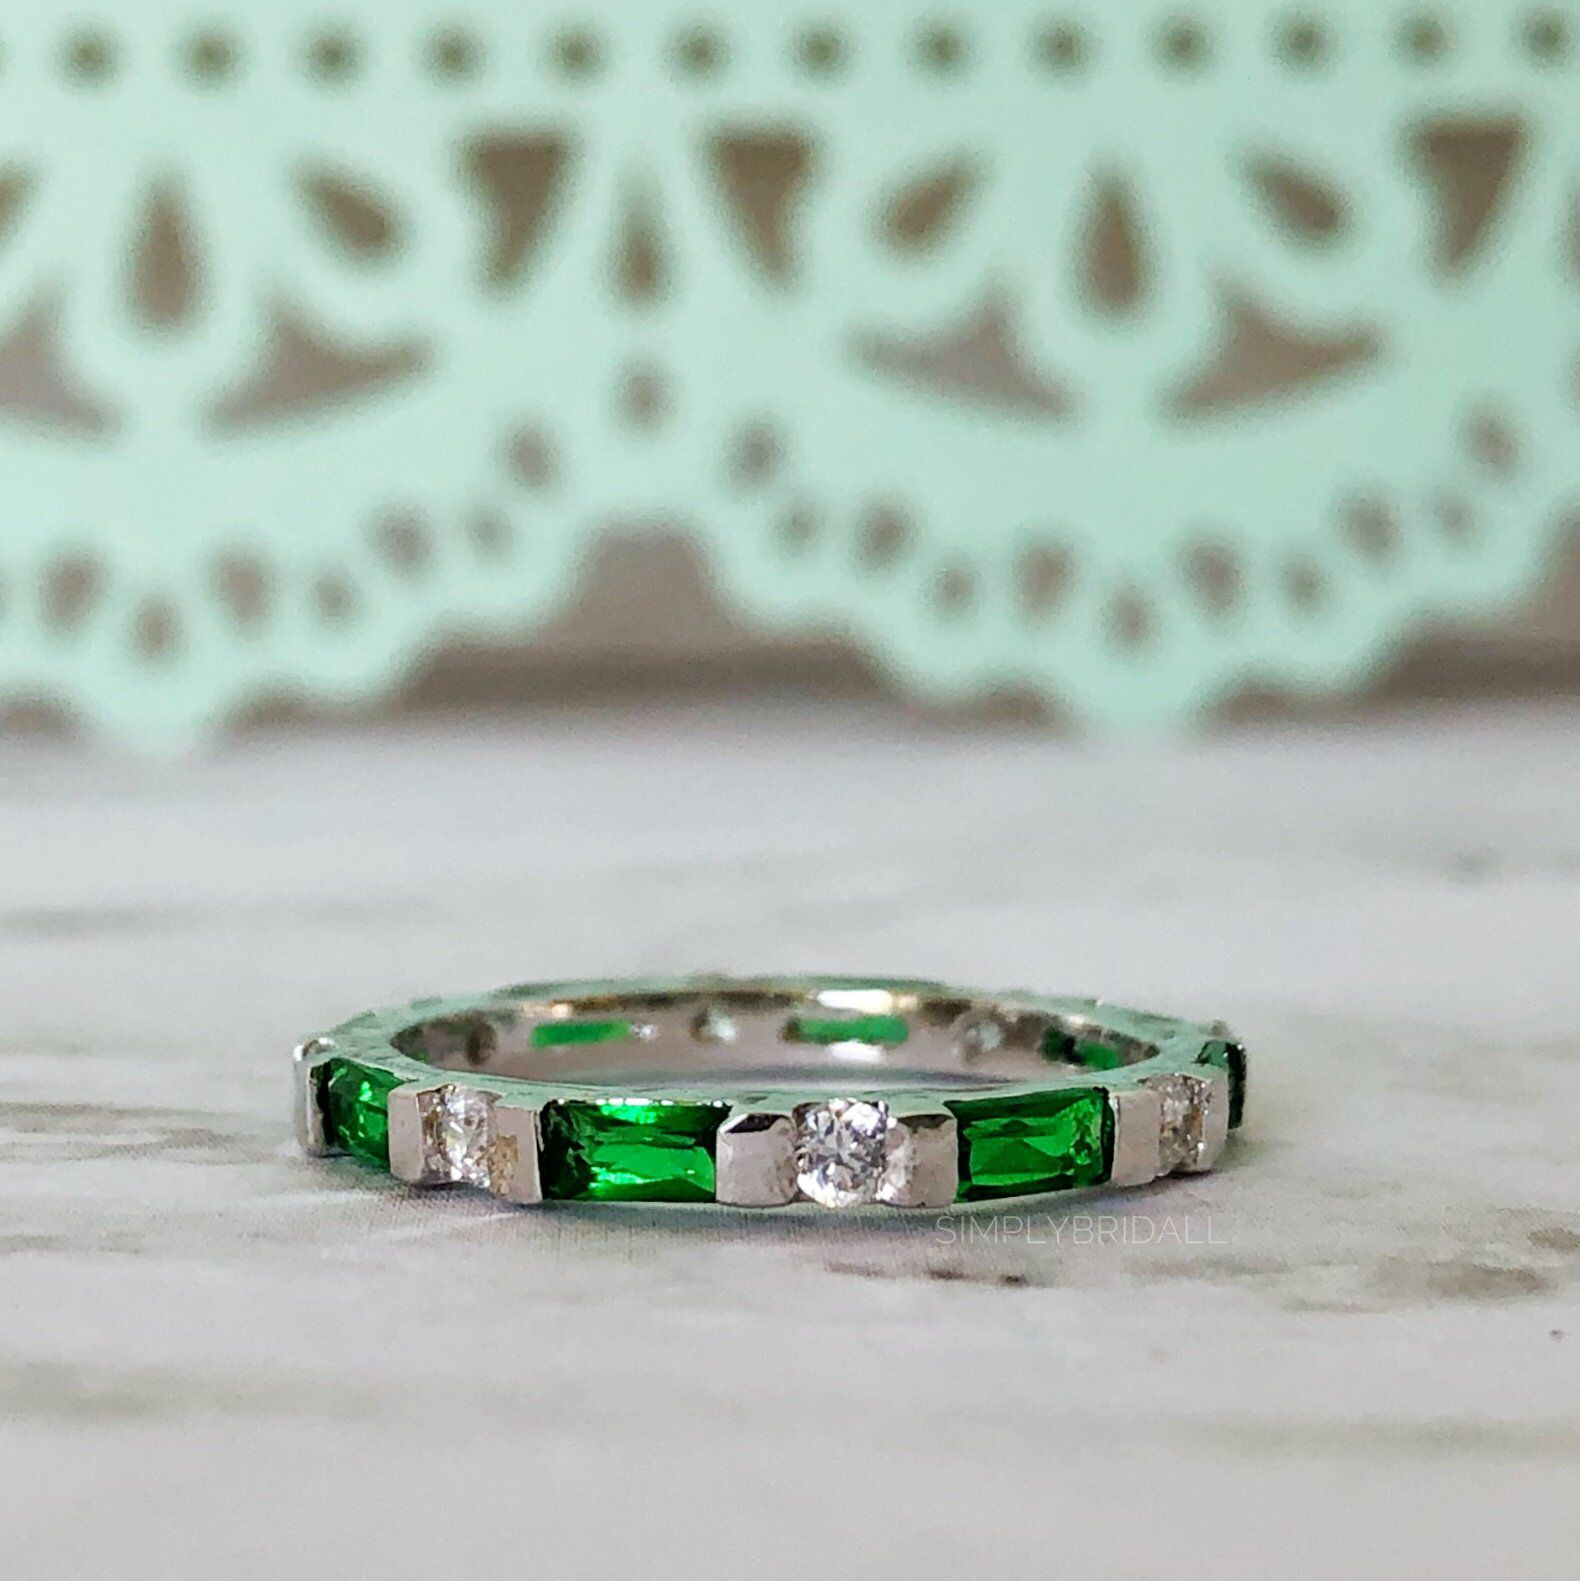 Green Emerald Eternity Band Sterling Silver Wedding Band Etsy Emerald Eternity Band Emerald Wedding Rings Silver Wedding Bands